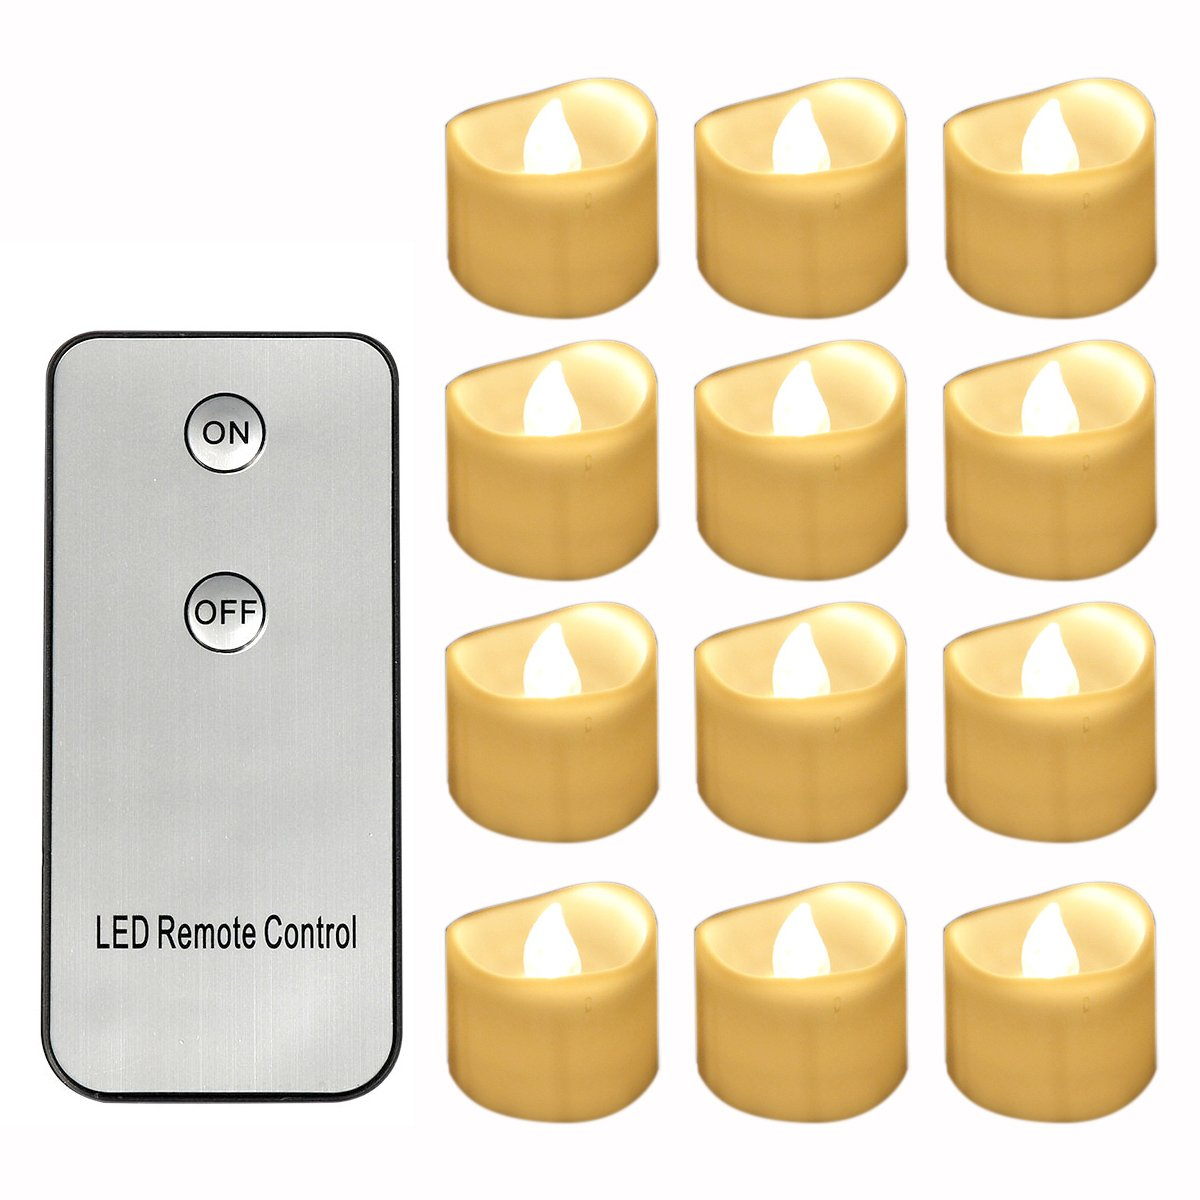 Flameless LED Warm White Flickering Amber Tea Light Candles with Remote Control, Vivii Battery-Powered Unscented LED Tealight Candles, Fake Candles, Tealights (12 Pack)